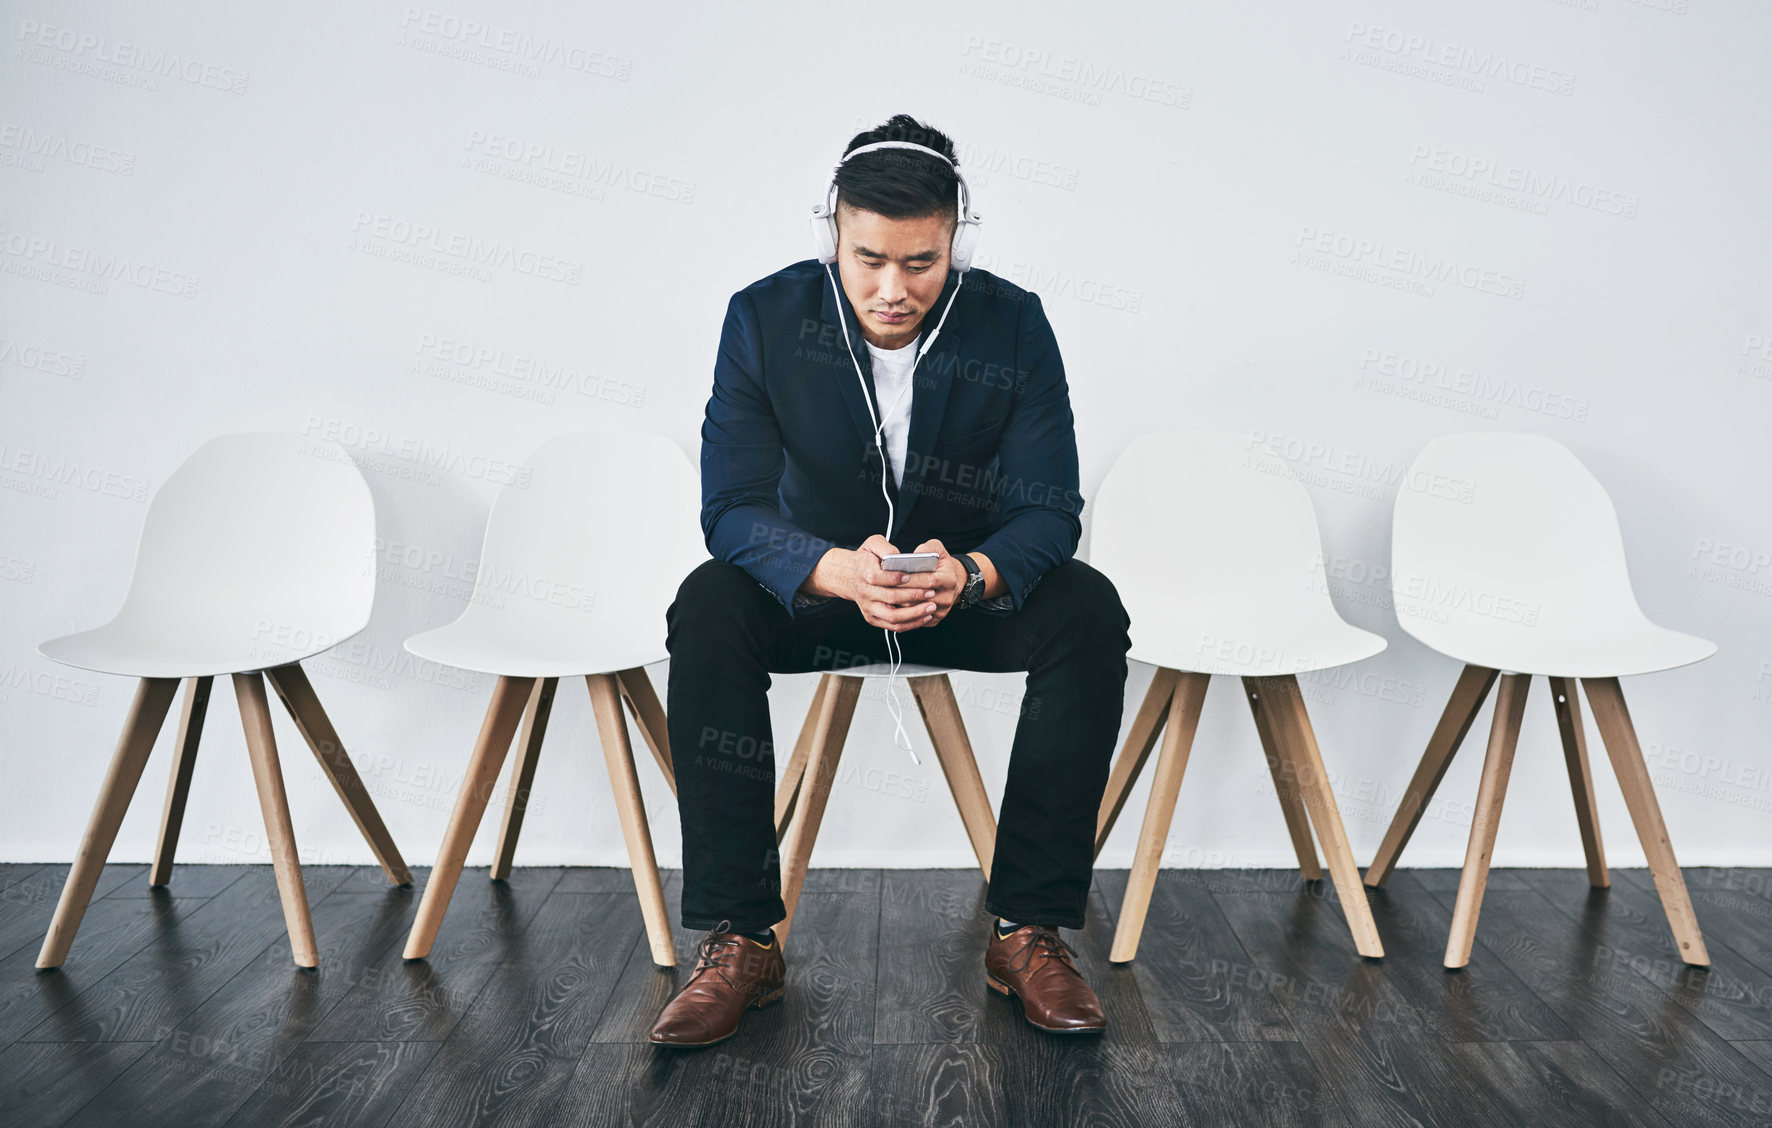 Buy stock photo Studio shot of a young businessman using a smartphone while waiting in line against a gray background